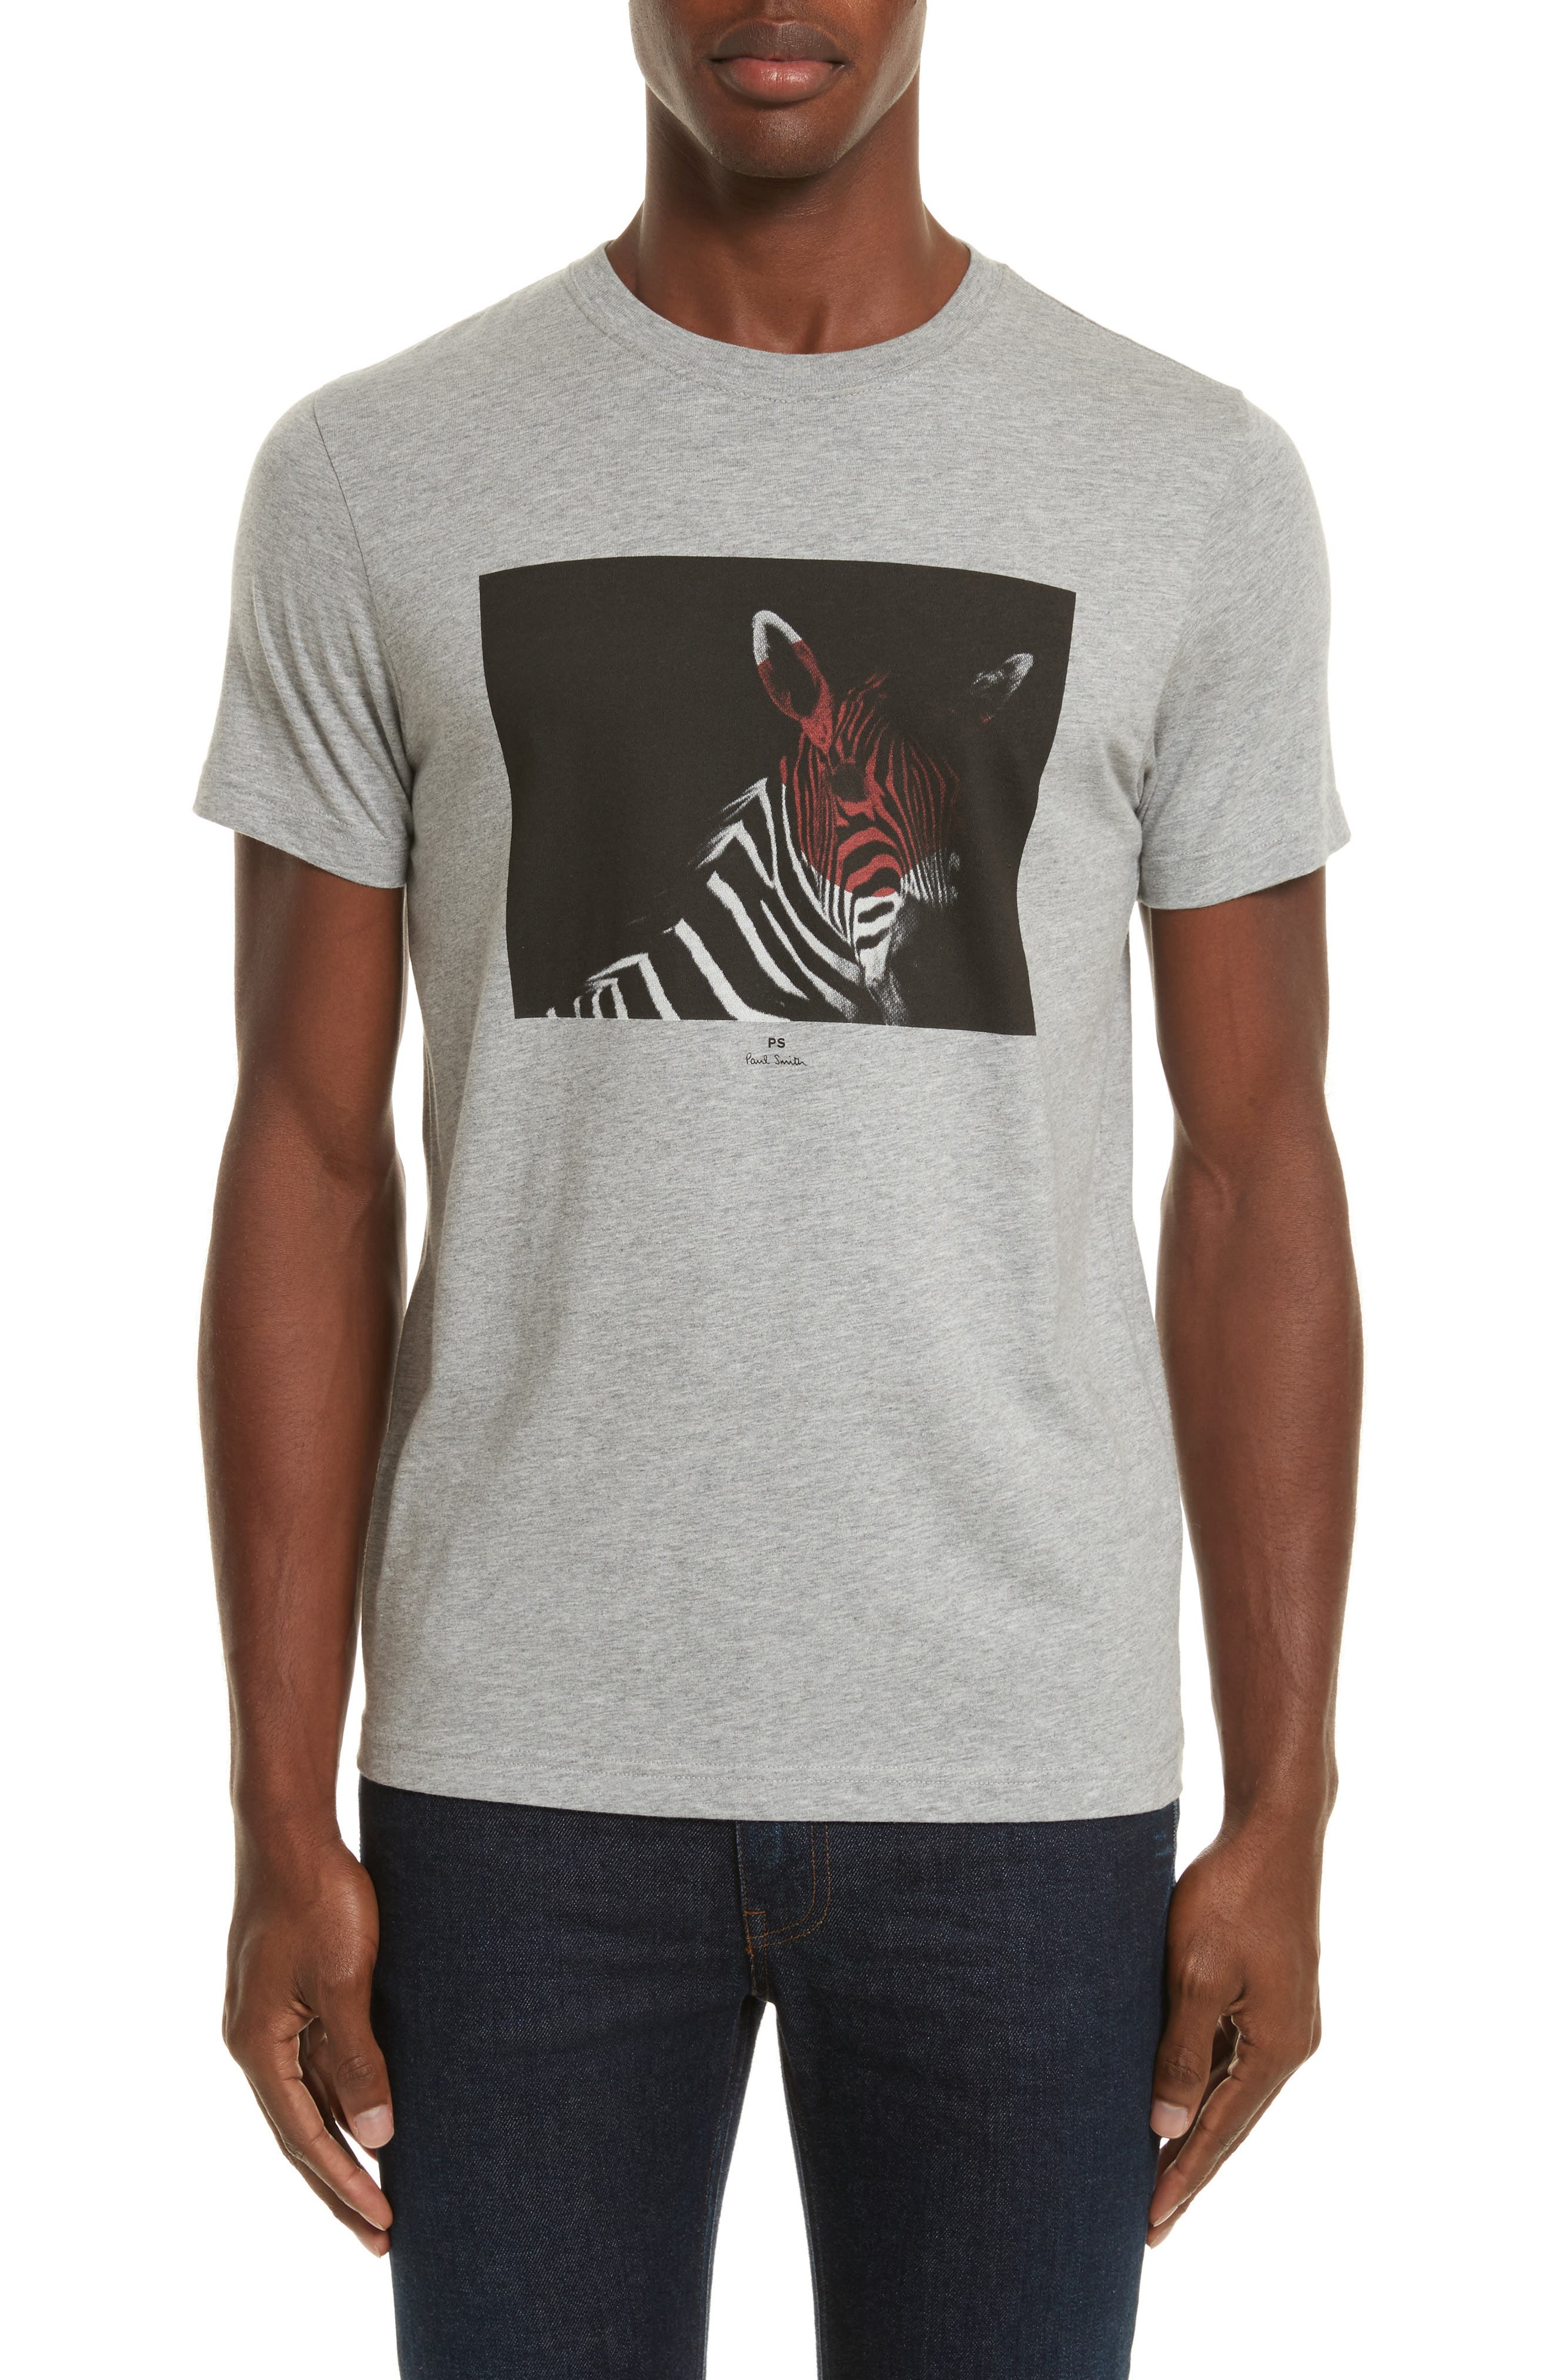 Alternate Image 1 Selected - PS Paul Smith Large Zebra Graphic T-Shirt